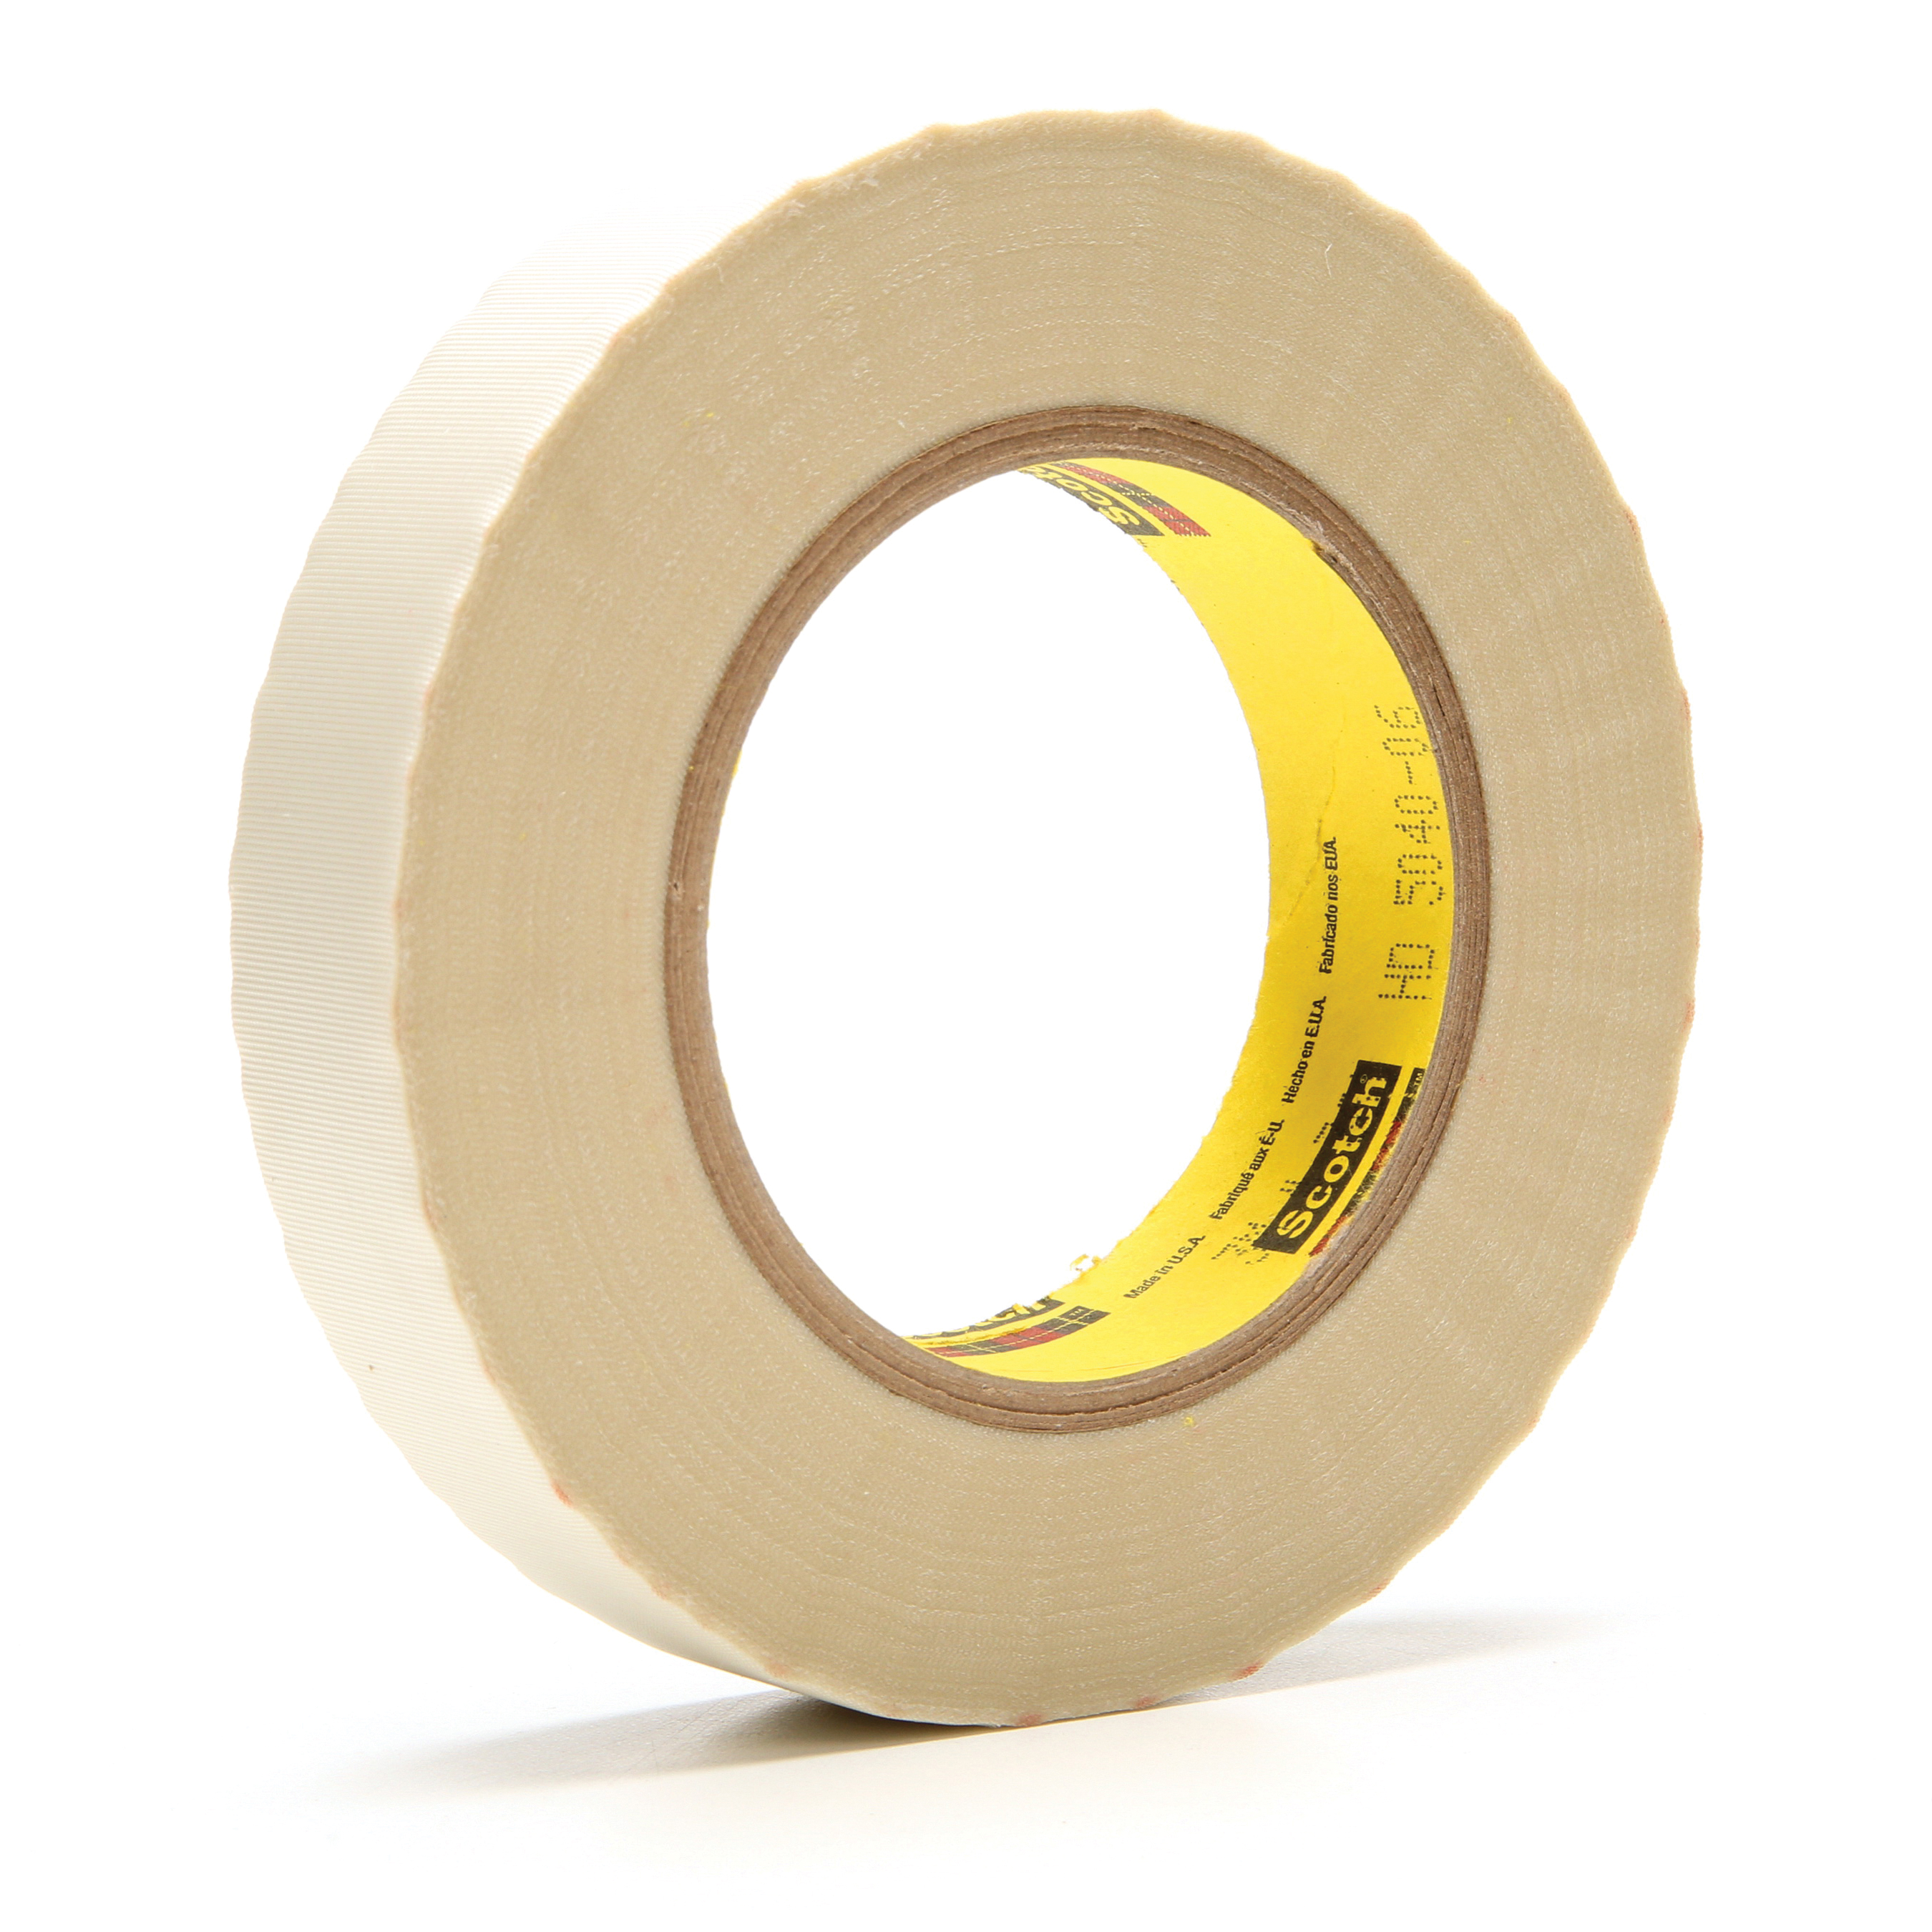 3M™ 021200-23713 Cloth Tape, 60 yd L x 1 in W, 6.4 mil THK, Silicon Adhesive, Glass Cloth Backing, White